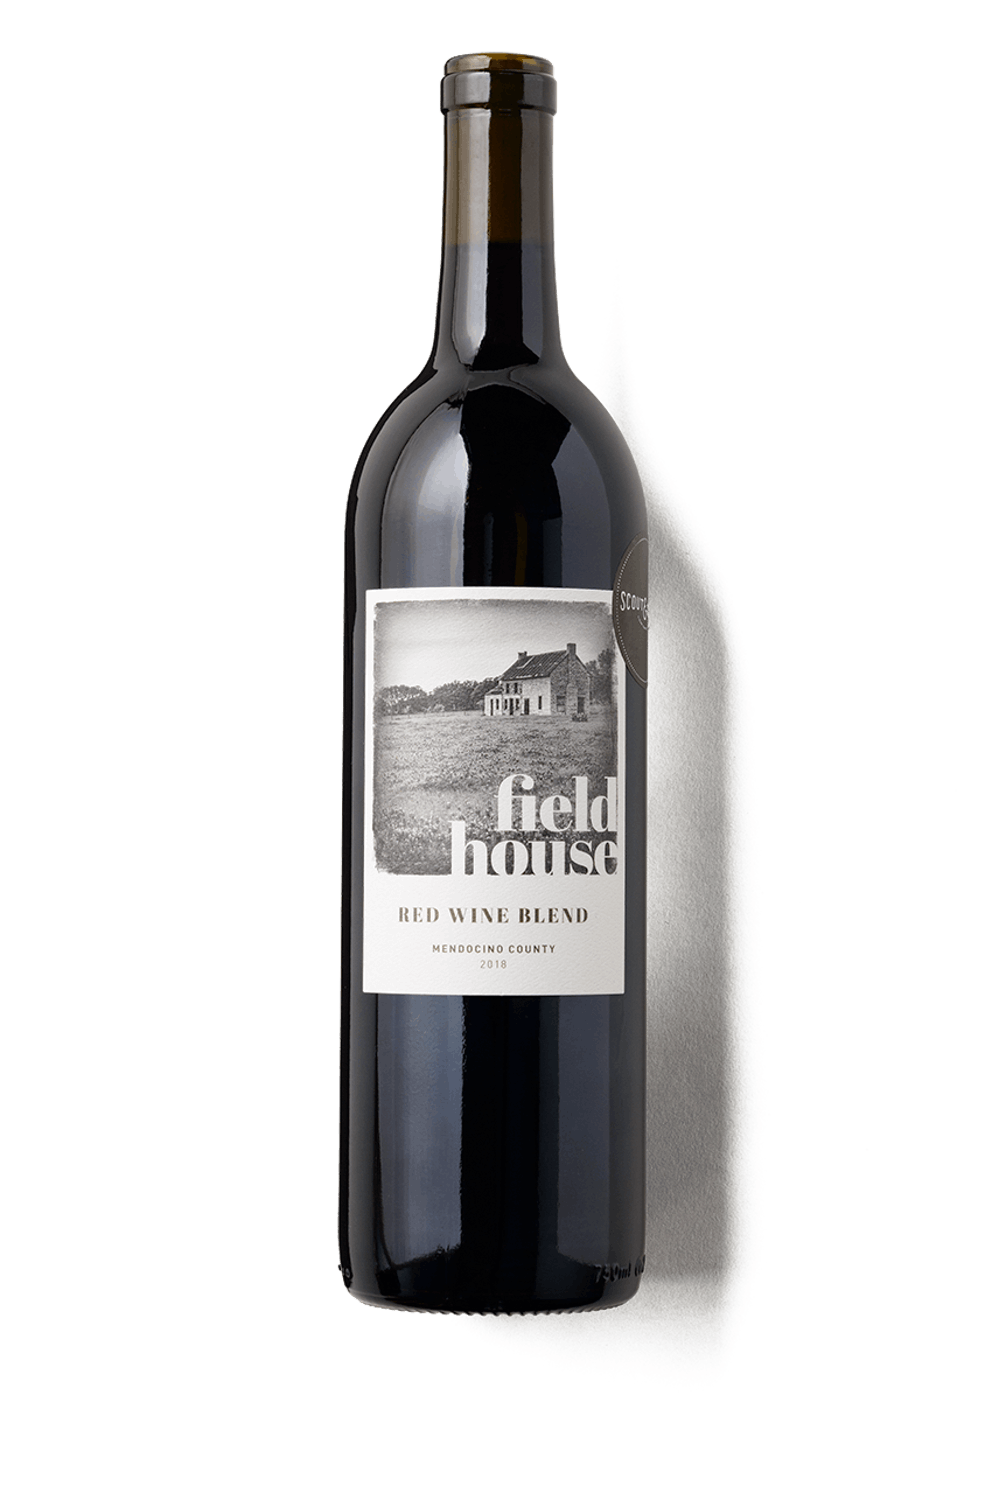 2018 Fieldhouse Red Blend Mendocino County, California